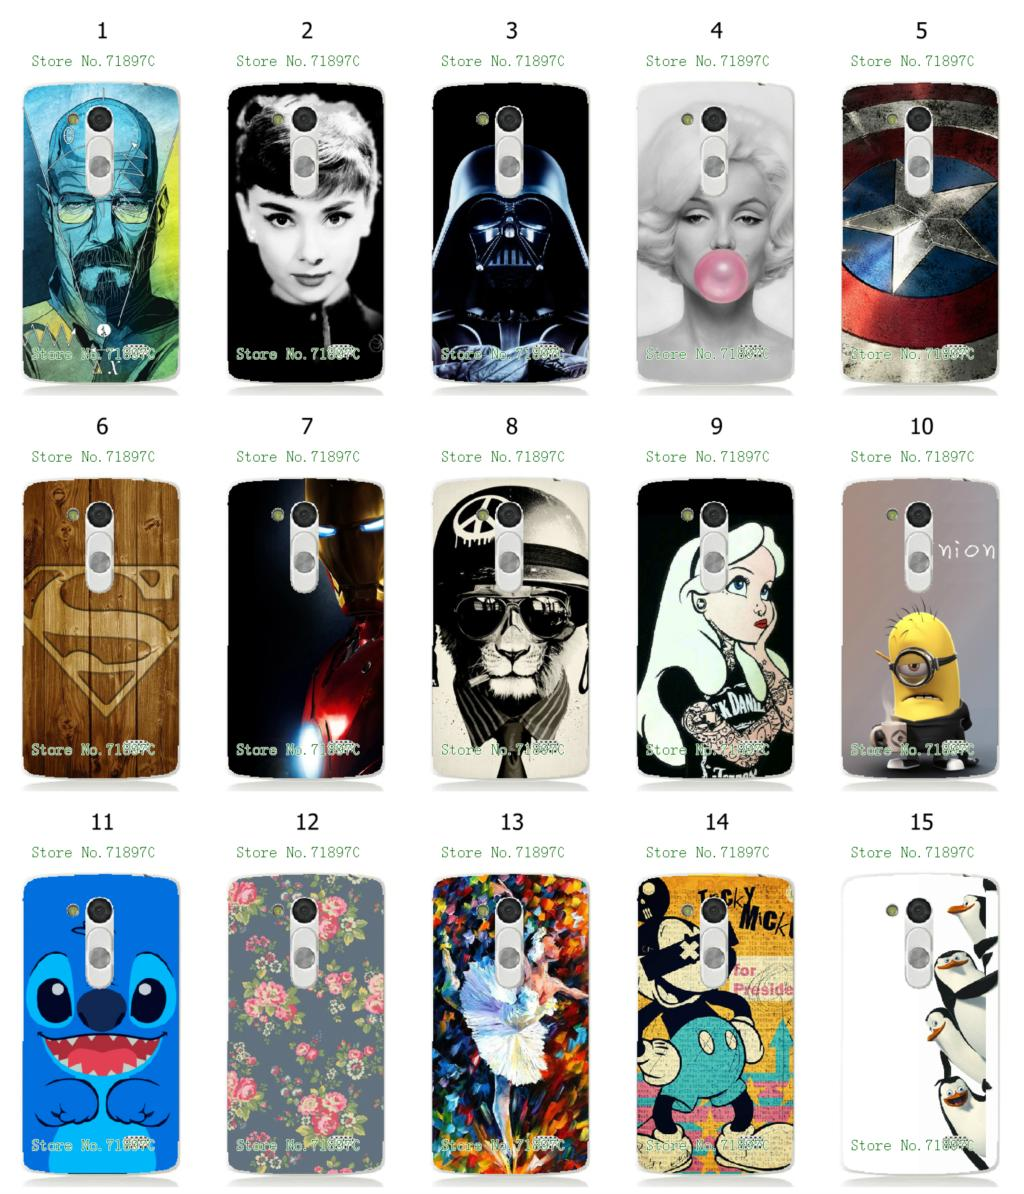 breaking bad flower colorful star wars new arrival hybrid retail 15designs white hard cover cases for